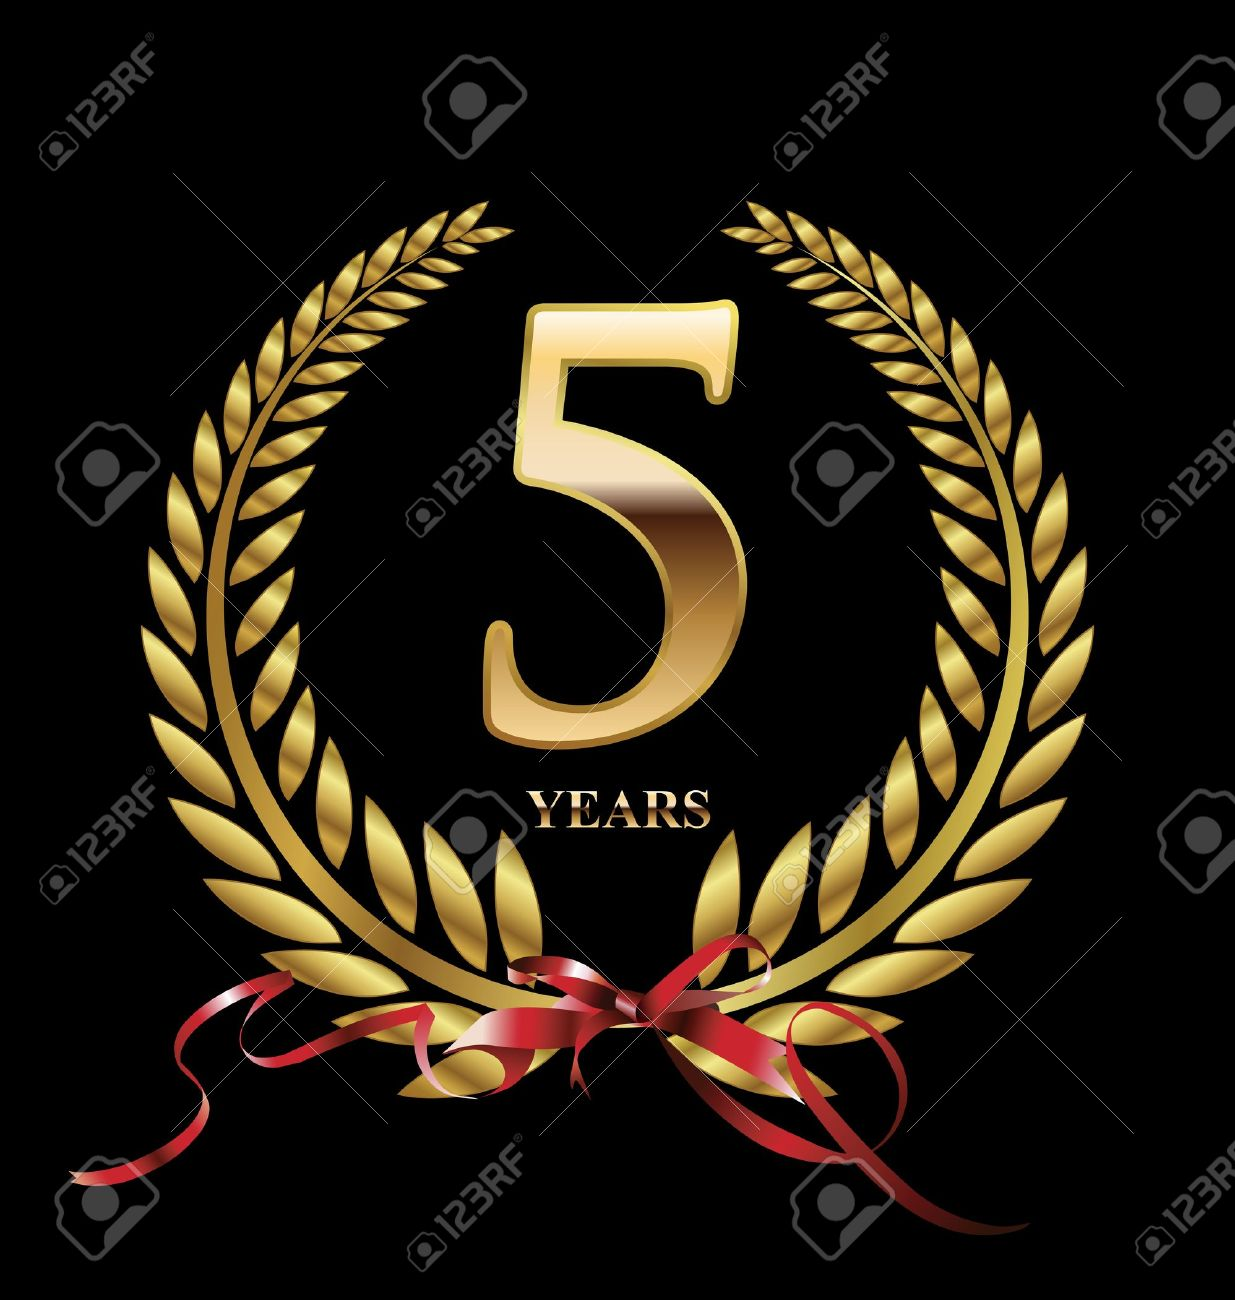 5 years anniversary golden label royalty free cliparts vectors 5 years anniversary golden label stock vector 21823553 biocorpaavc Choice Image